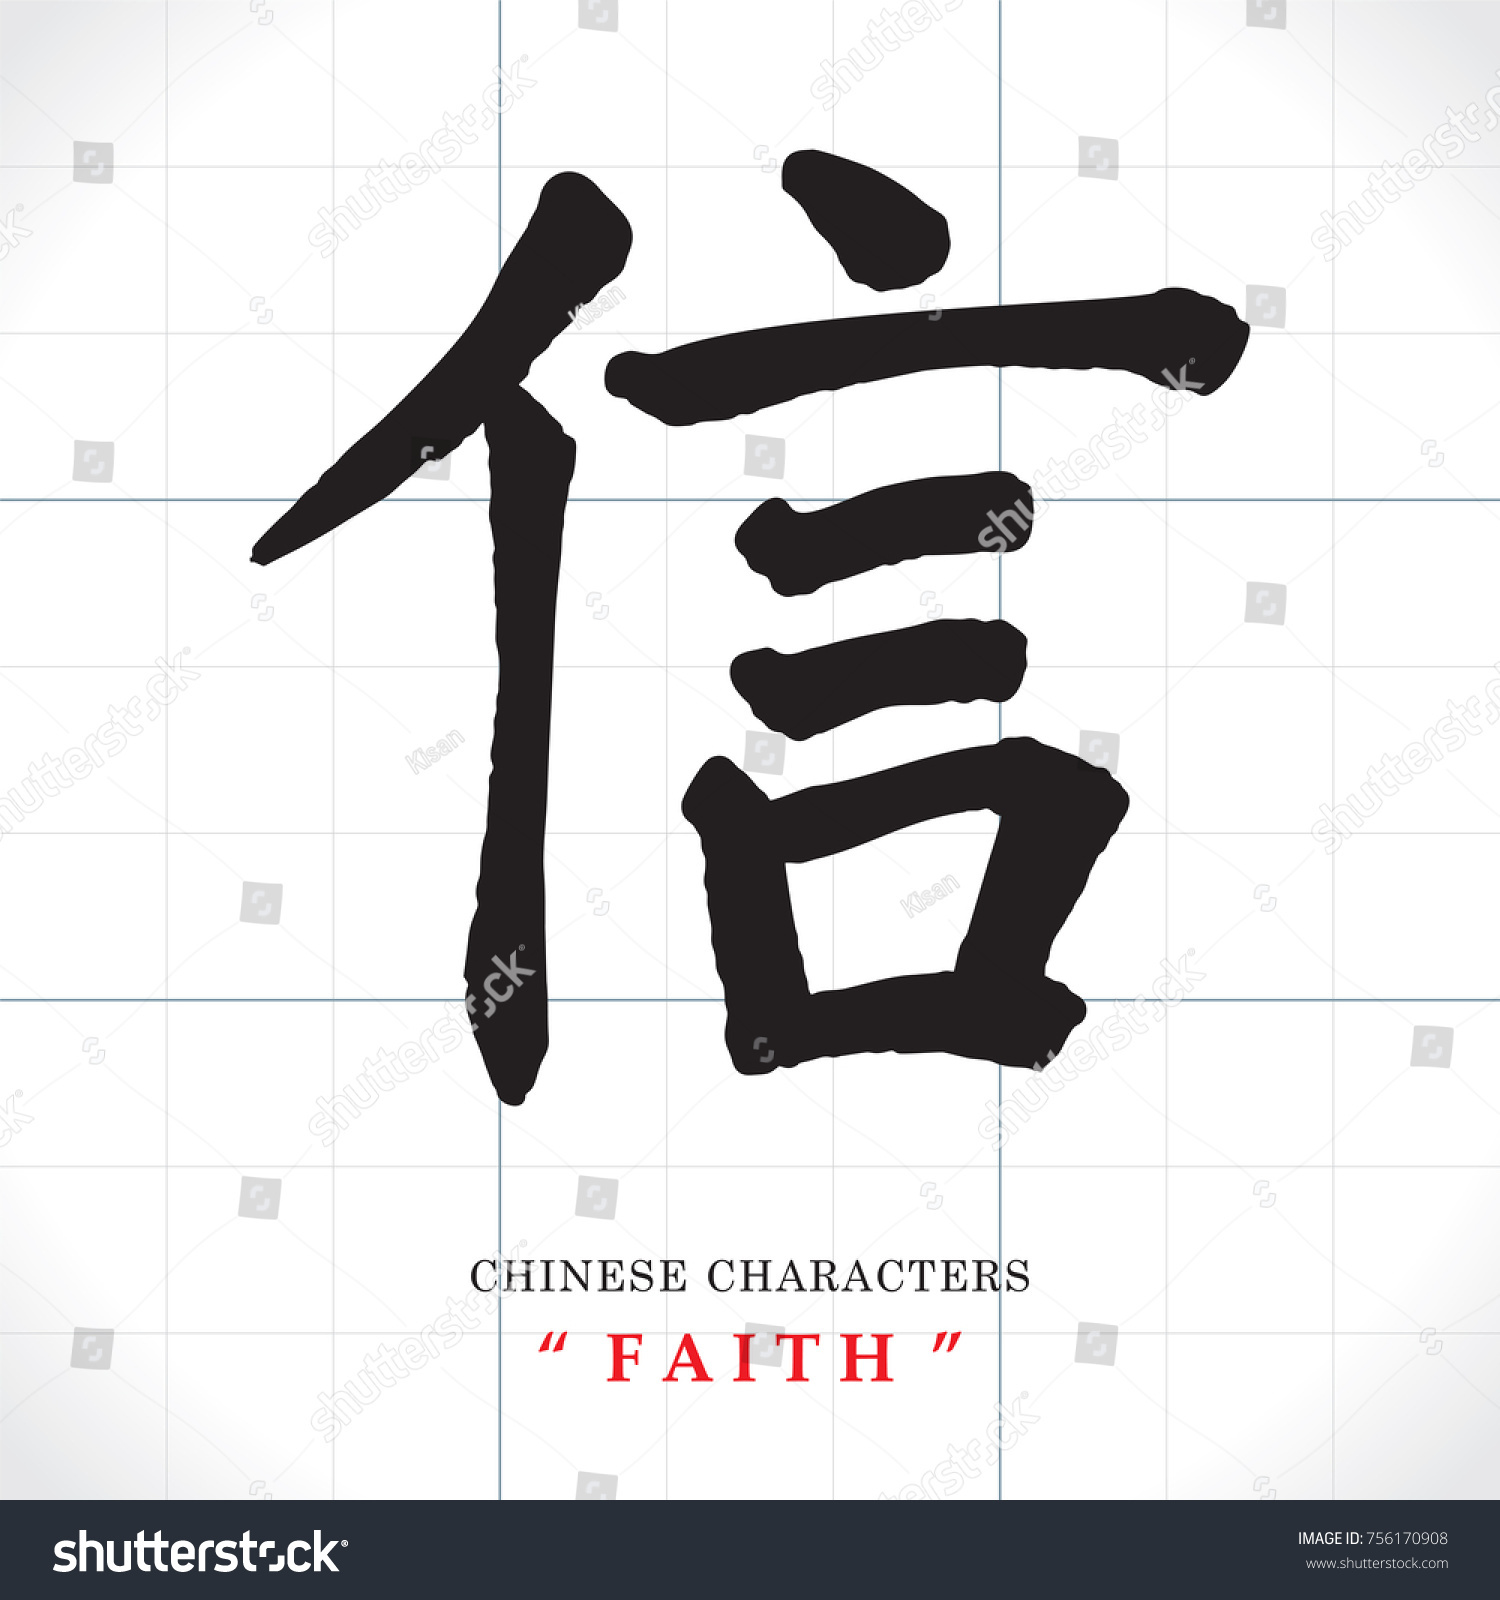 Vector chinese characters faith stock vector 756170908 shutterstock vector chinese characters faith biocorpaavc Images